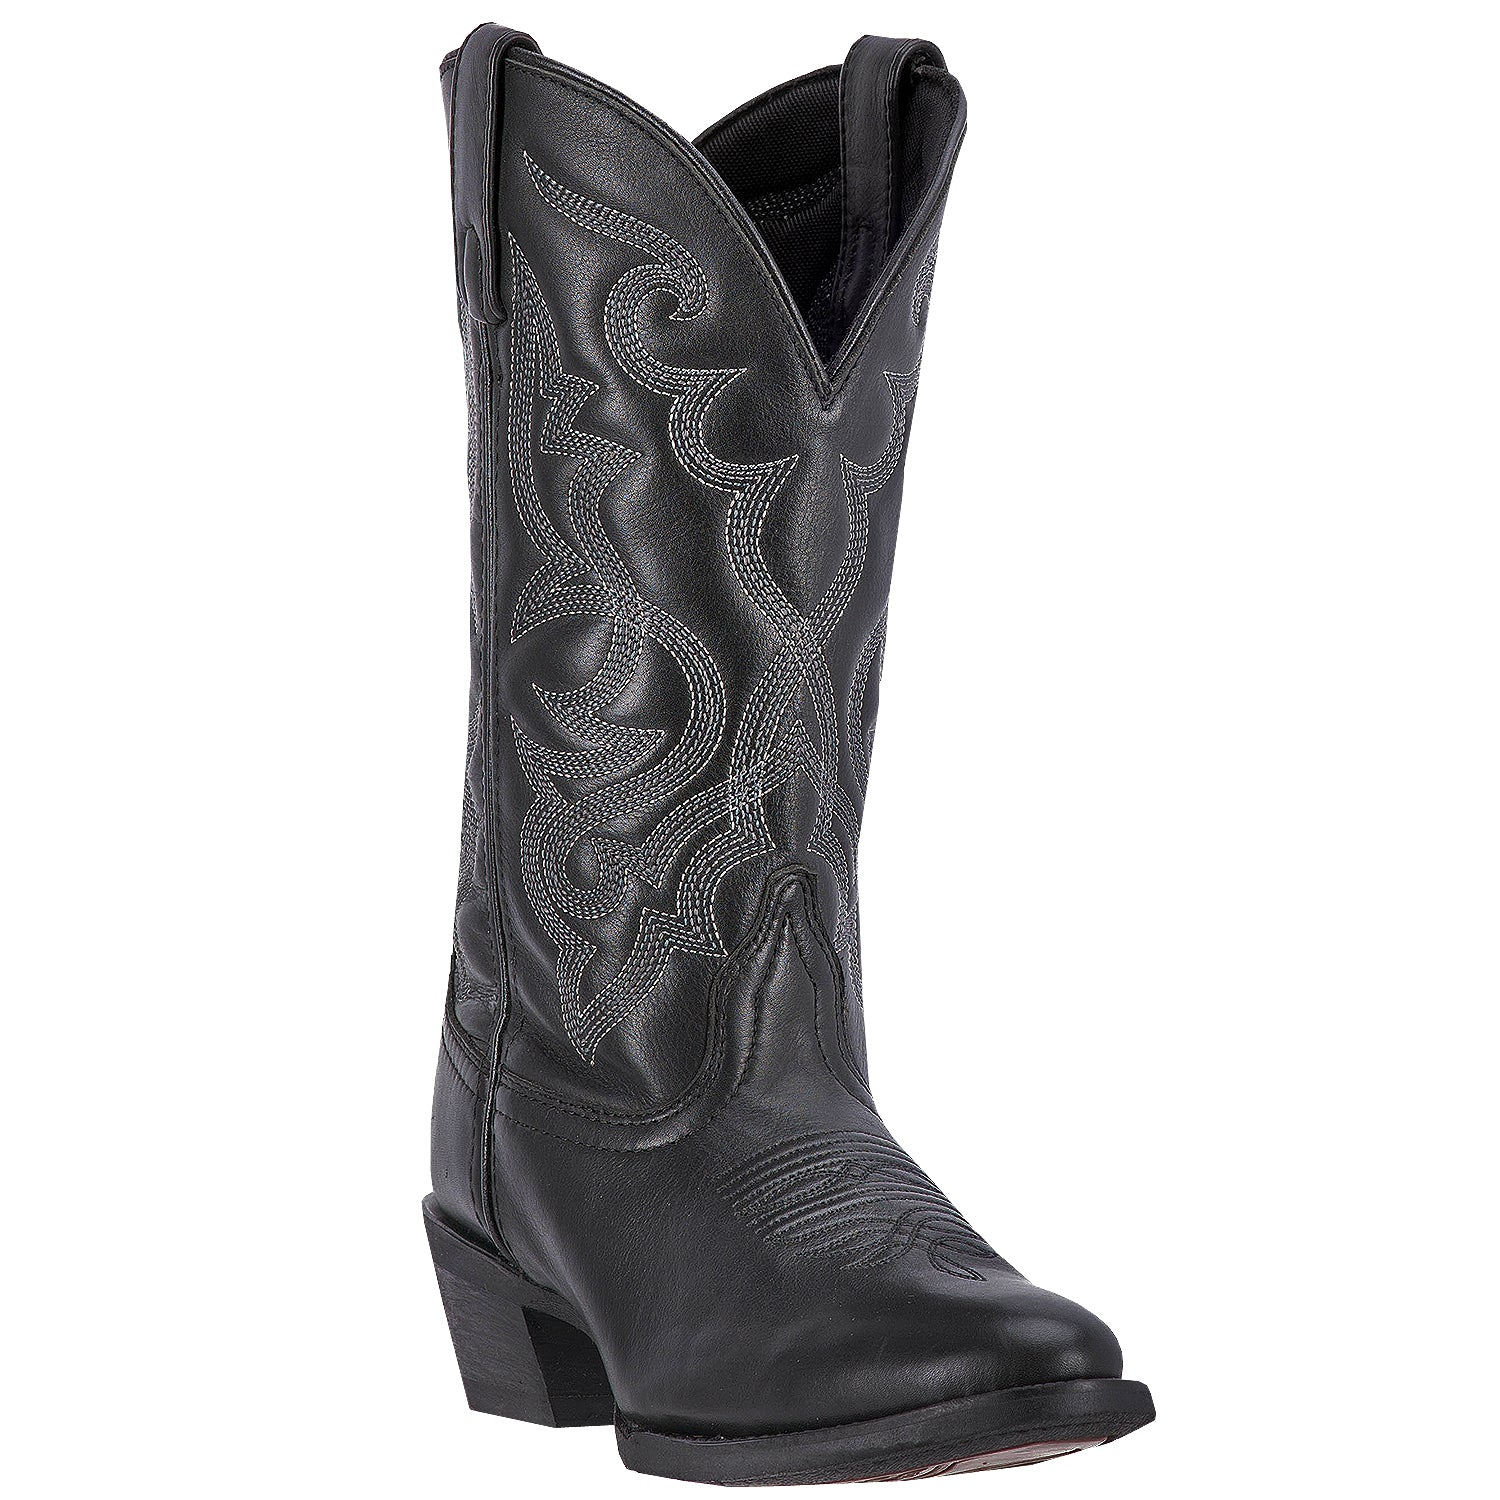 MADDIE LEATHER BOOT - Dan Post Boots